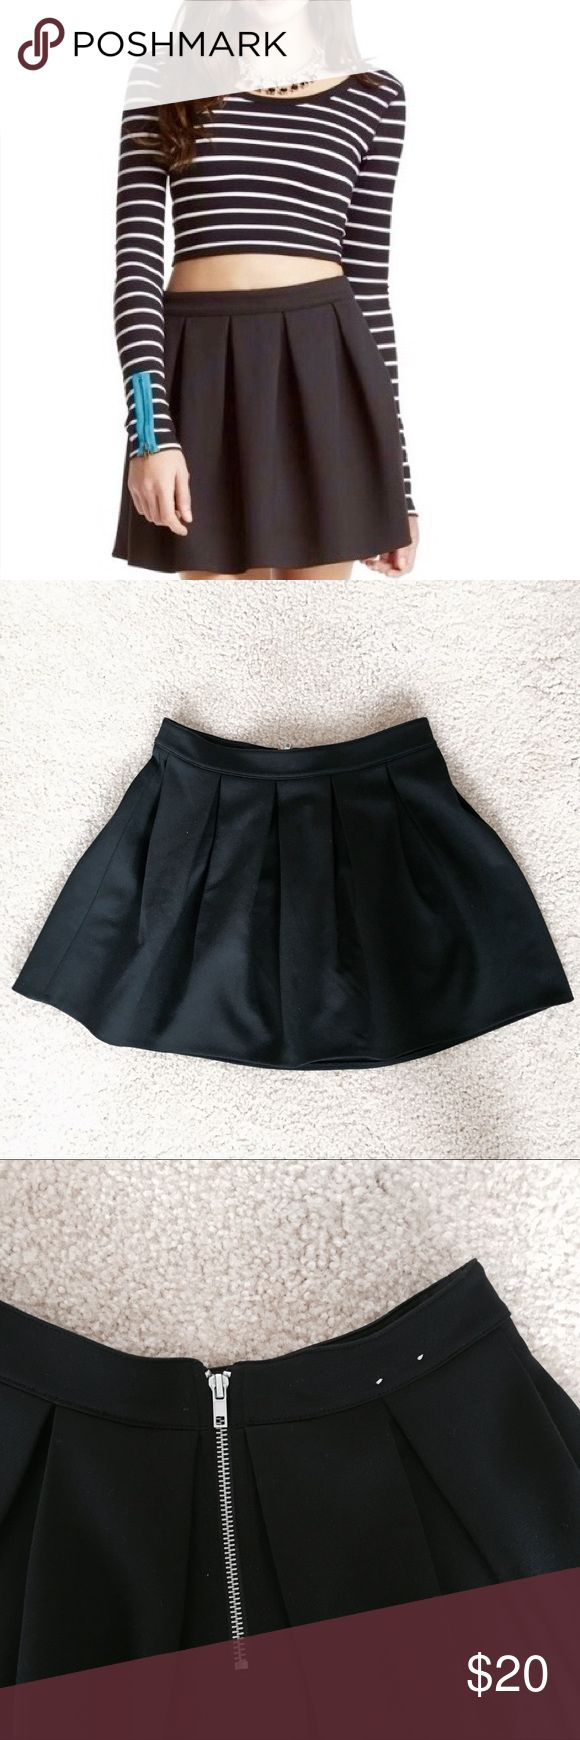 """NWOT Bethany Mota Black Pleated A-line Skirt - a-line high waisted, cotton black skirt perfect to wear with any top in the world!  - size labeled as MEDIUM best fit for waist 26""""- 27"""" Aeropostale Skirts A-Line or Full"""